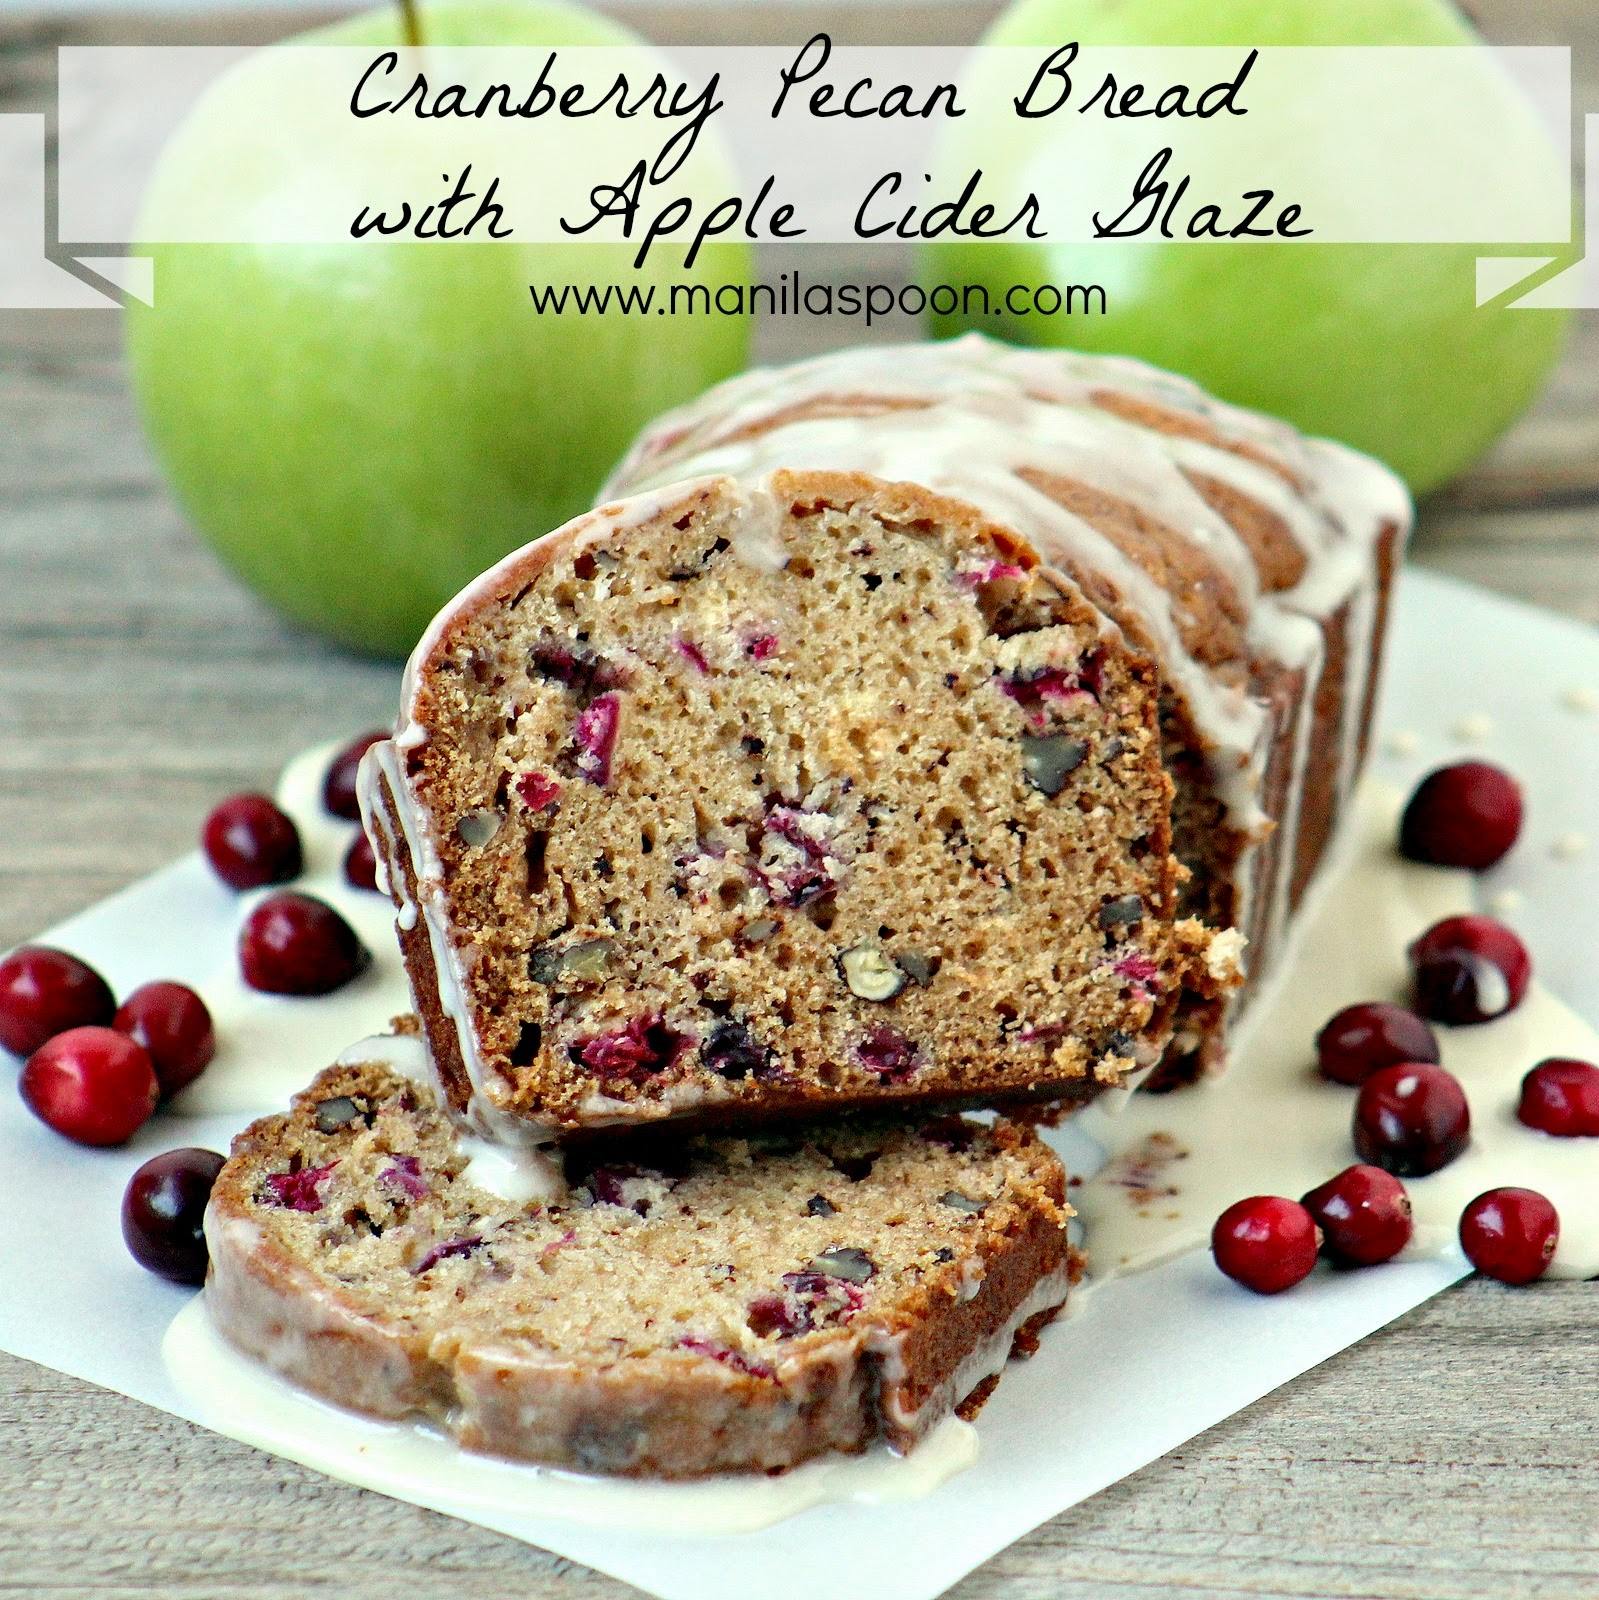 Flavored with Apple Cider, this moist and delicious nutty and sweet-tangy bread is the perfect snack for the family. Perfect for Thanksgiving, Christmas or any holiday dessert table. -CRANBERRY PECAN BREAD WITH APPLE CIDER GLAZE